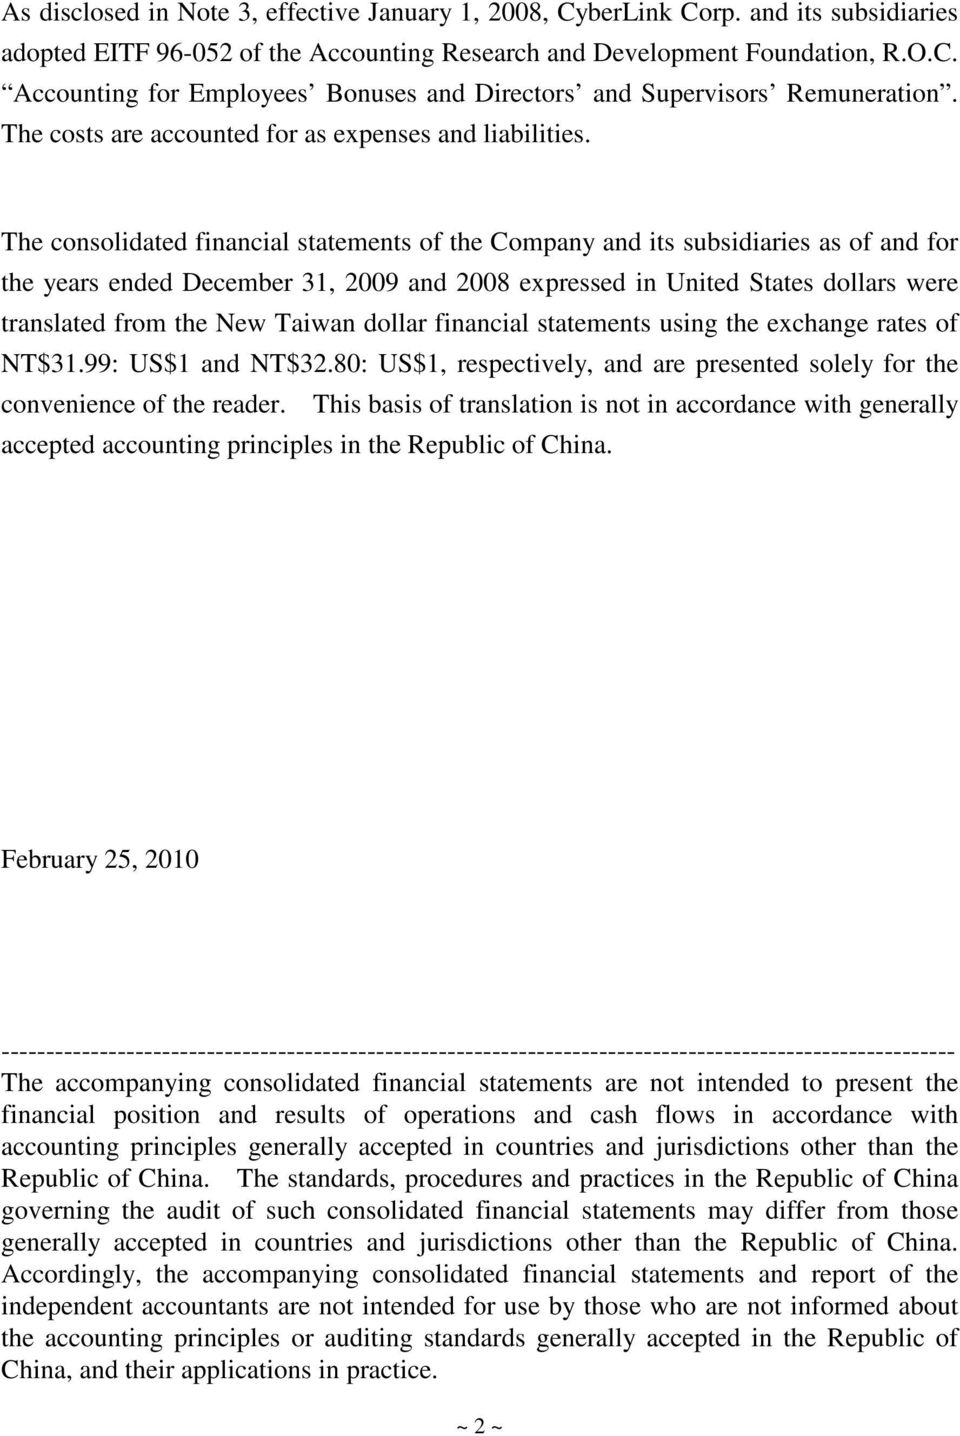 The consolidated financial statements of the Company and its subsidiaries as of and for the years ended December 31, 2009 and 2008 expressed in United States dollars were translated from the New